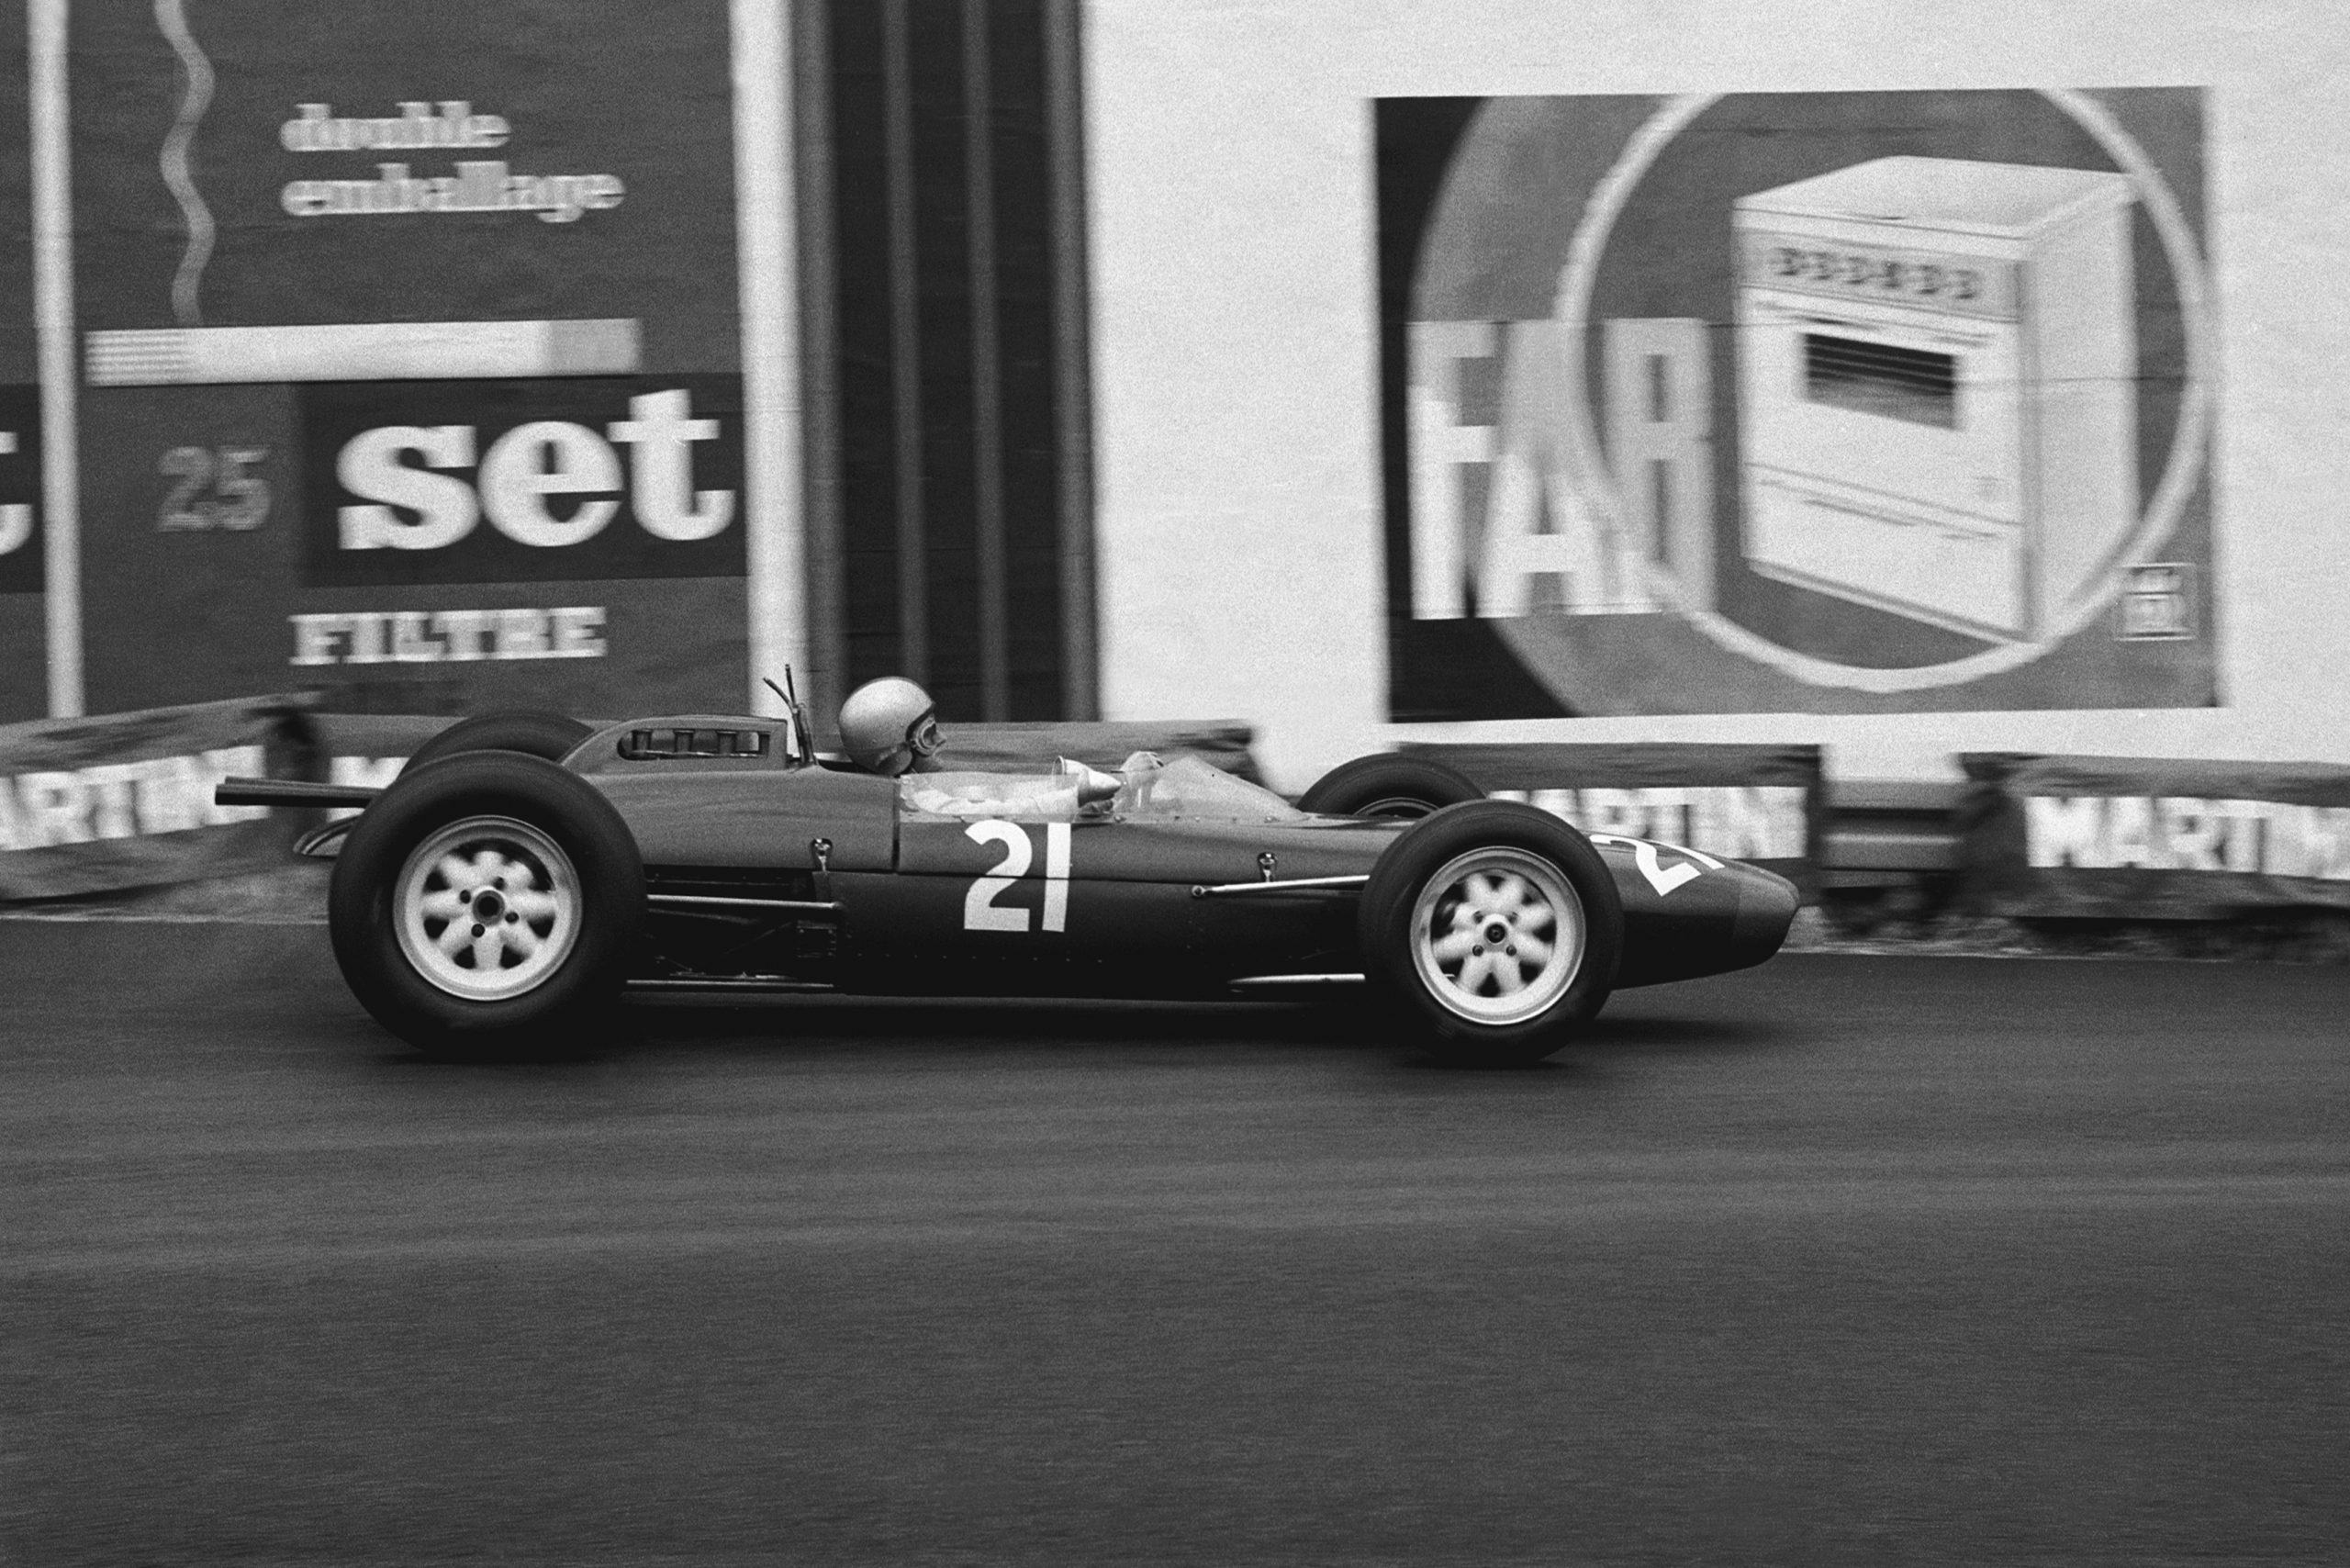 Chris Amon in his Lola Mk4A Climax.